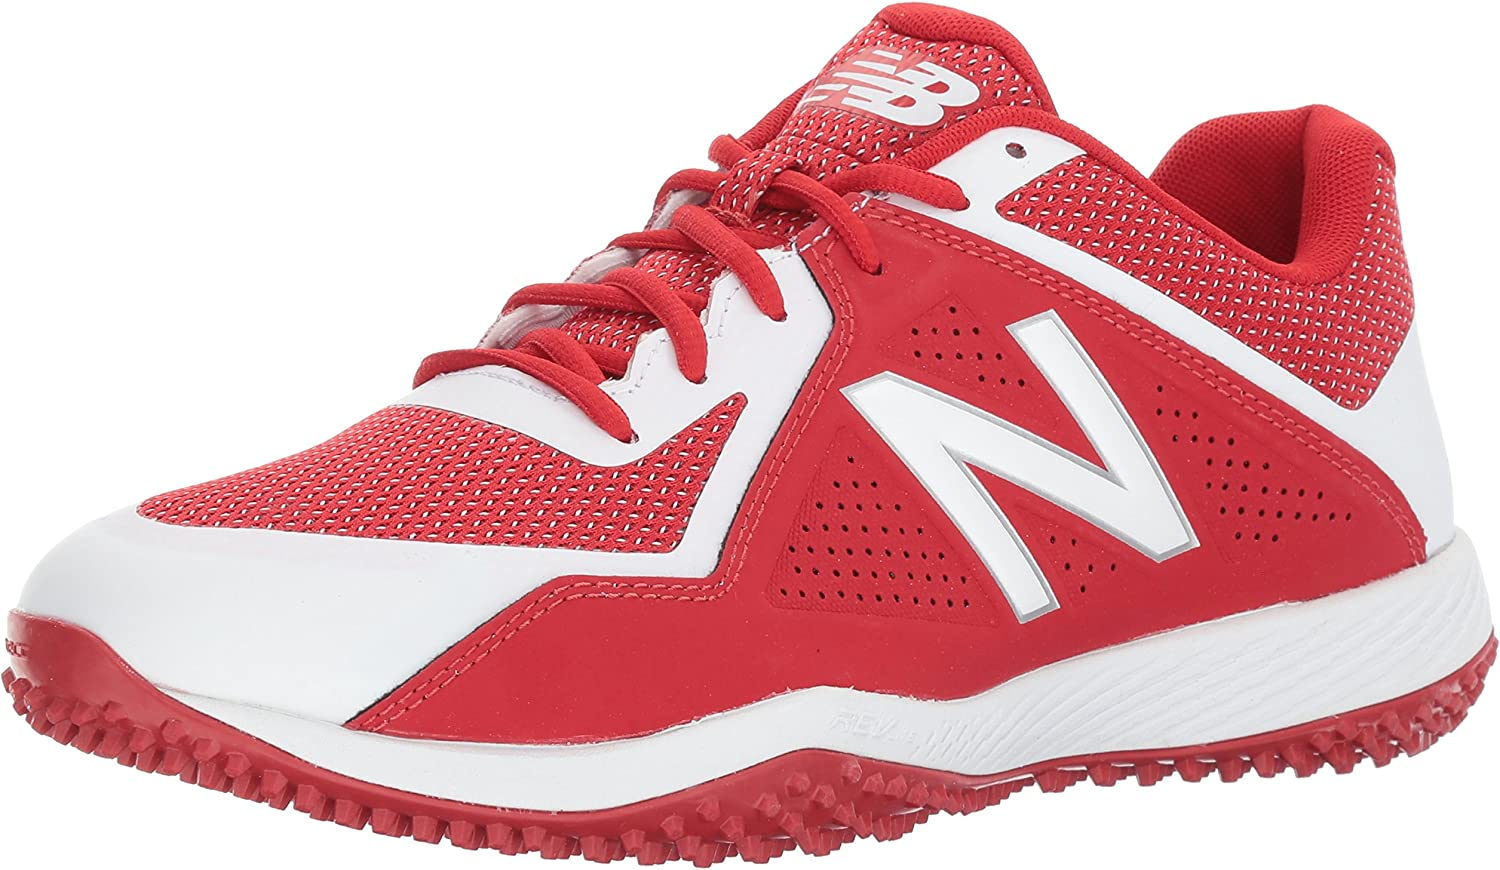 New Balance Men's T4040v4 Turf Baseball schuhe, rot Weiß, 15 D US